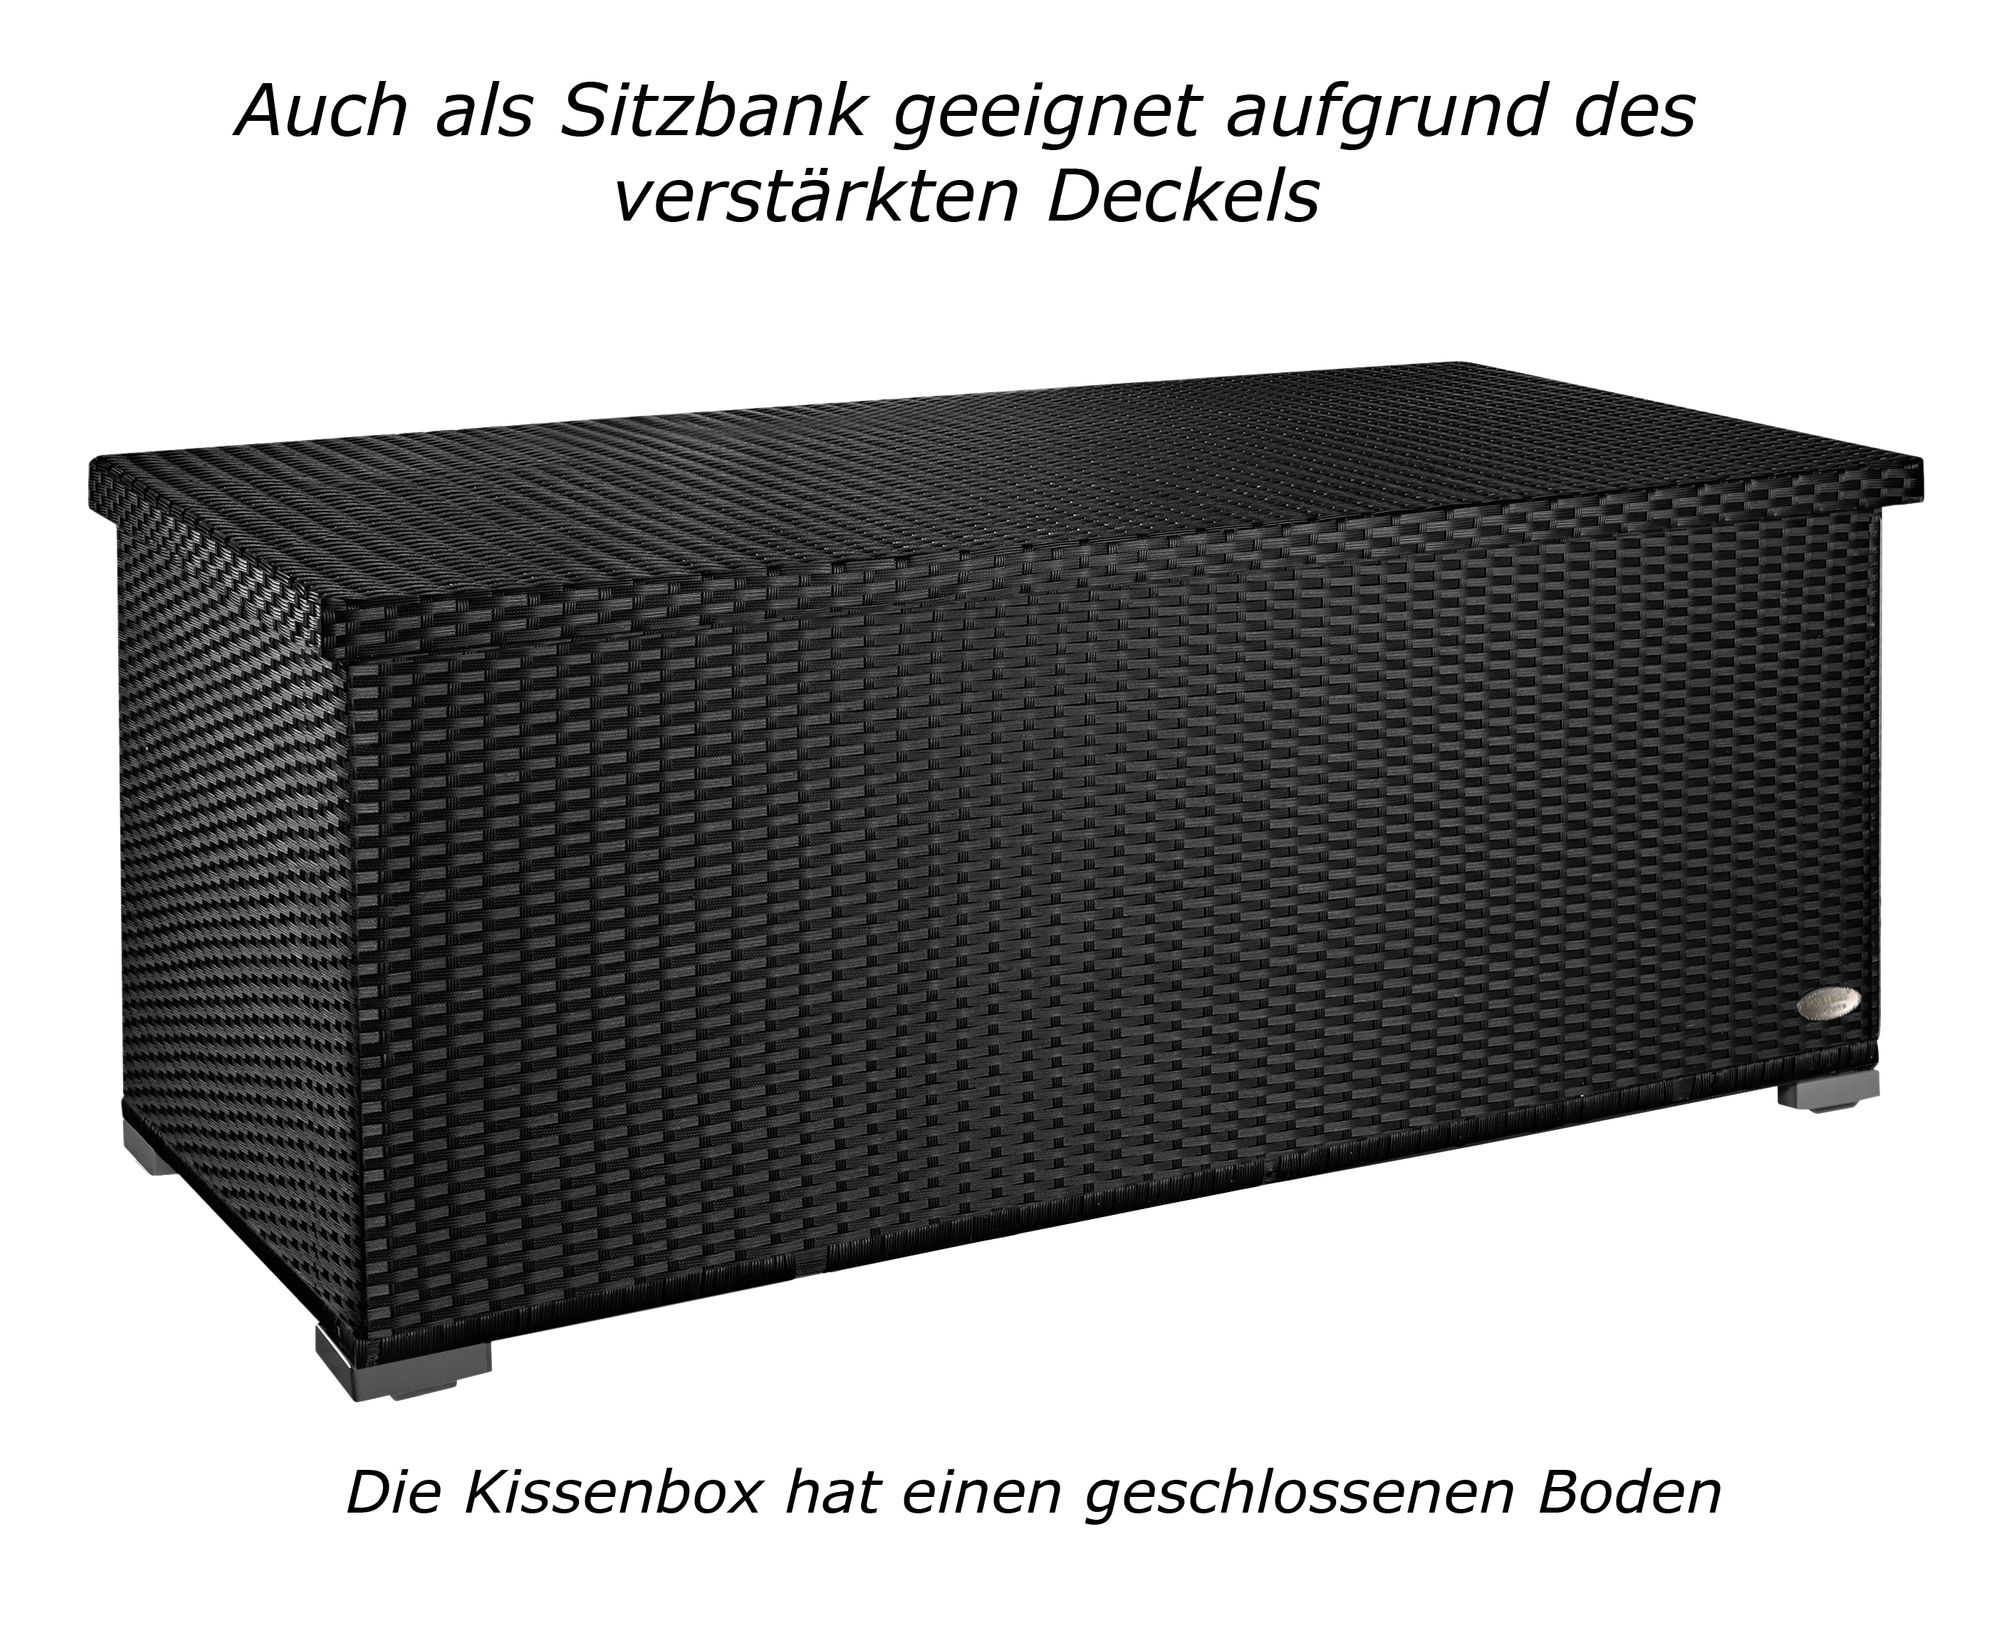 kissenbox auflagenbox gartentruhe gartenbox truhe box polyrattan rattan schwarz gartenm bel. Black Bedroom Furniture Sets. Home Design Ideas